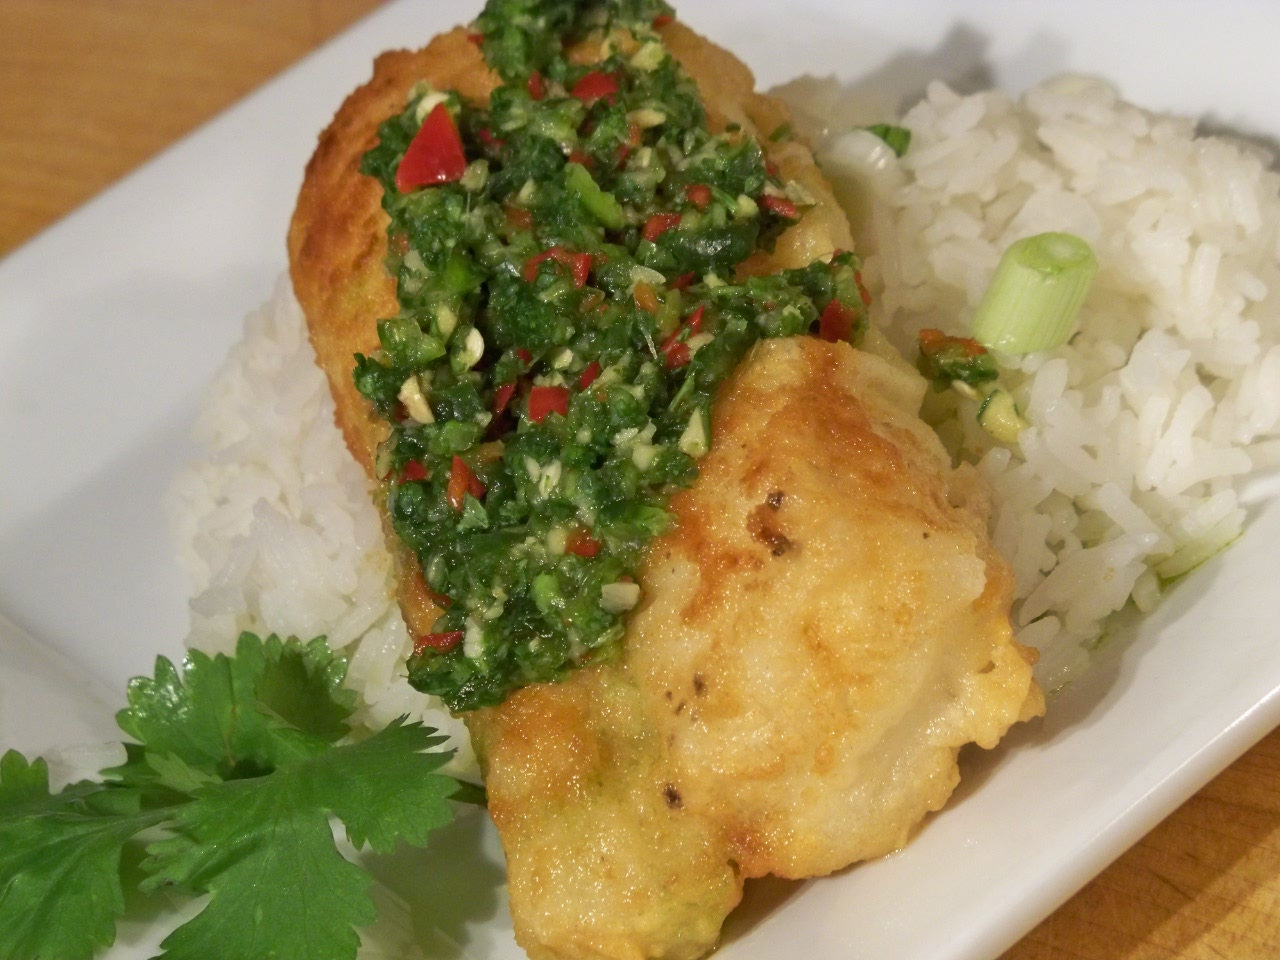 Pan fried cod with cilantro chile relish gourmet day to day for Is cod fish kosher